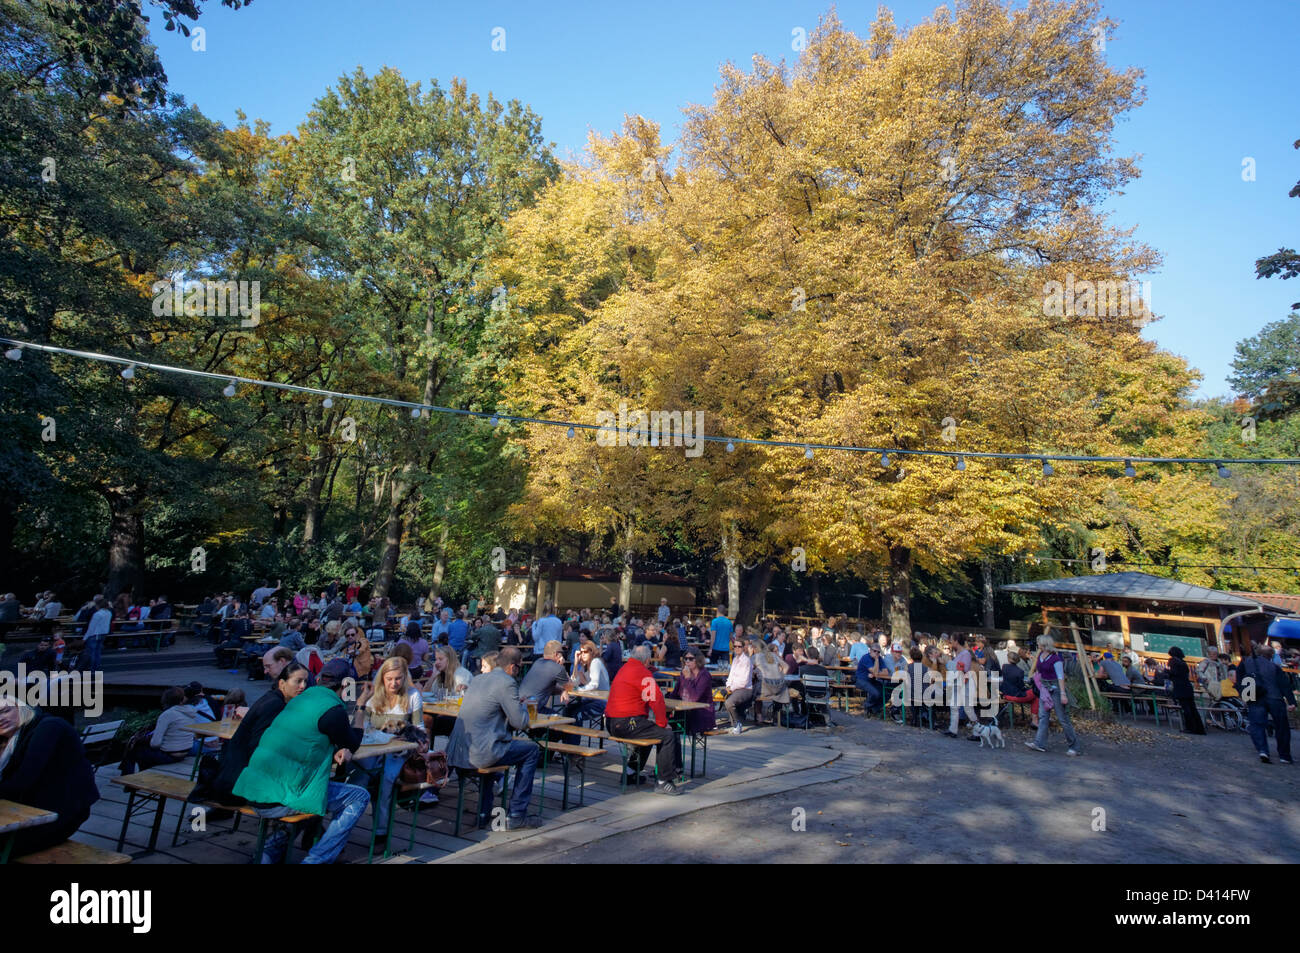 Cafe and beer garden Am Neuen See in Tiergarten in autumn, Berlin, Germany - Stock Image